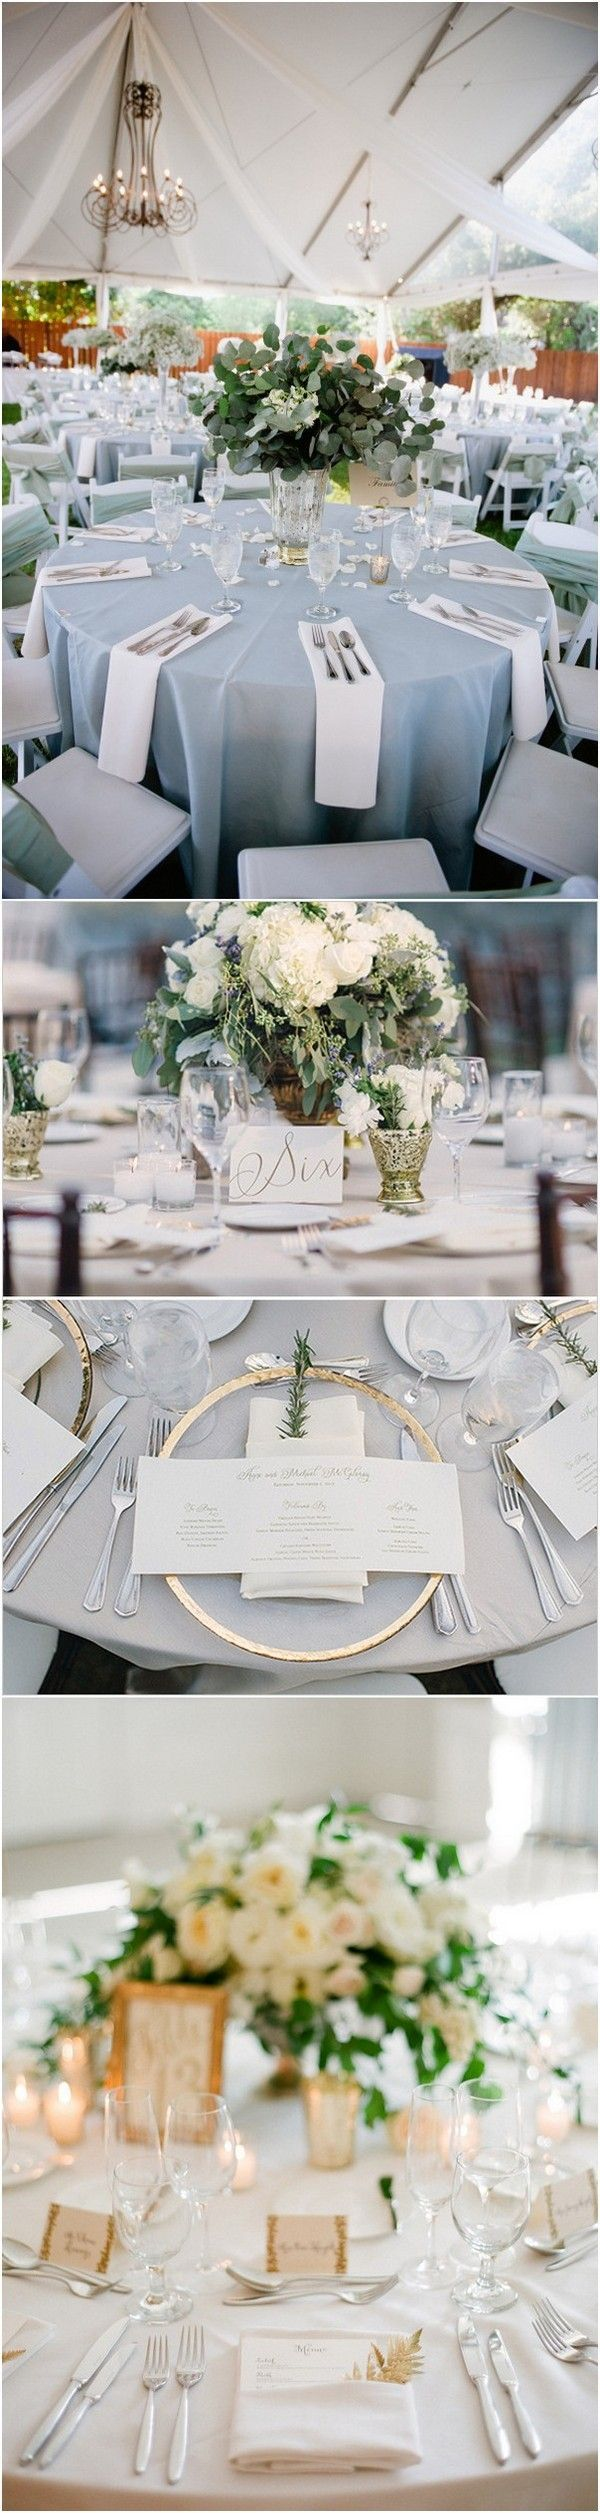 Wedding room decoration ideas 2018  Top  So Elegant Wedding Table Setting Ideas for   Page  of